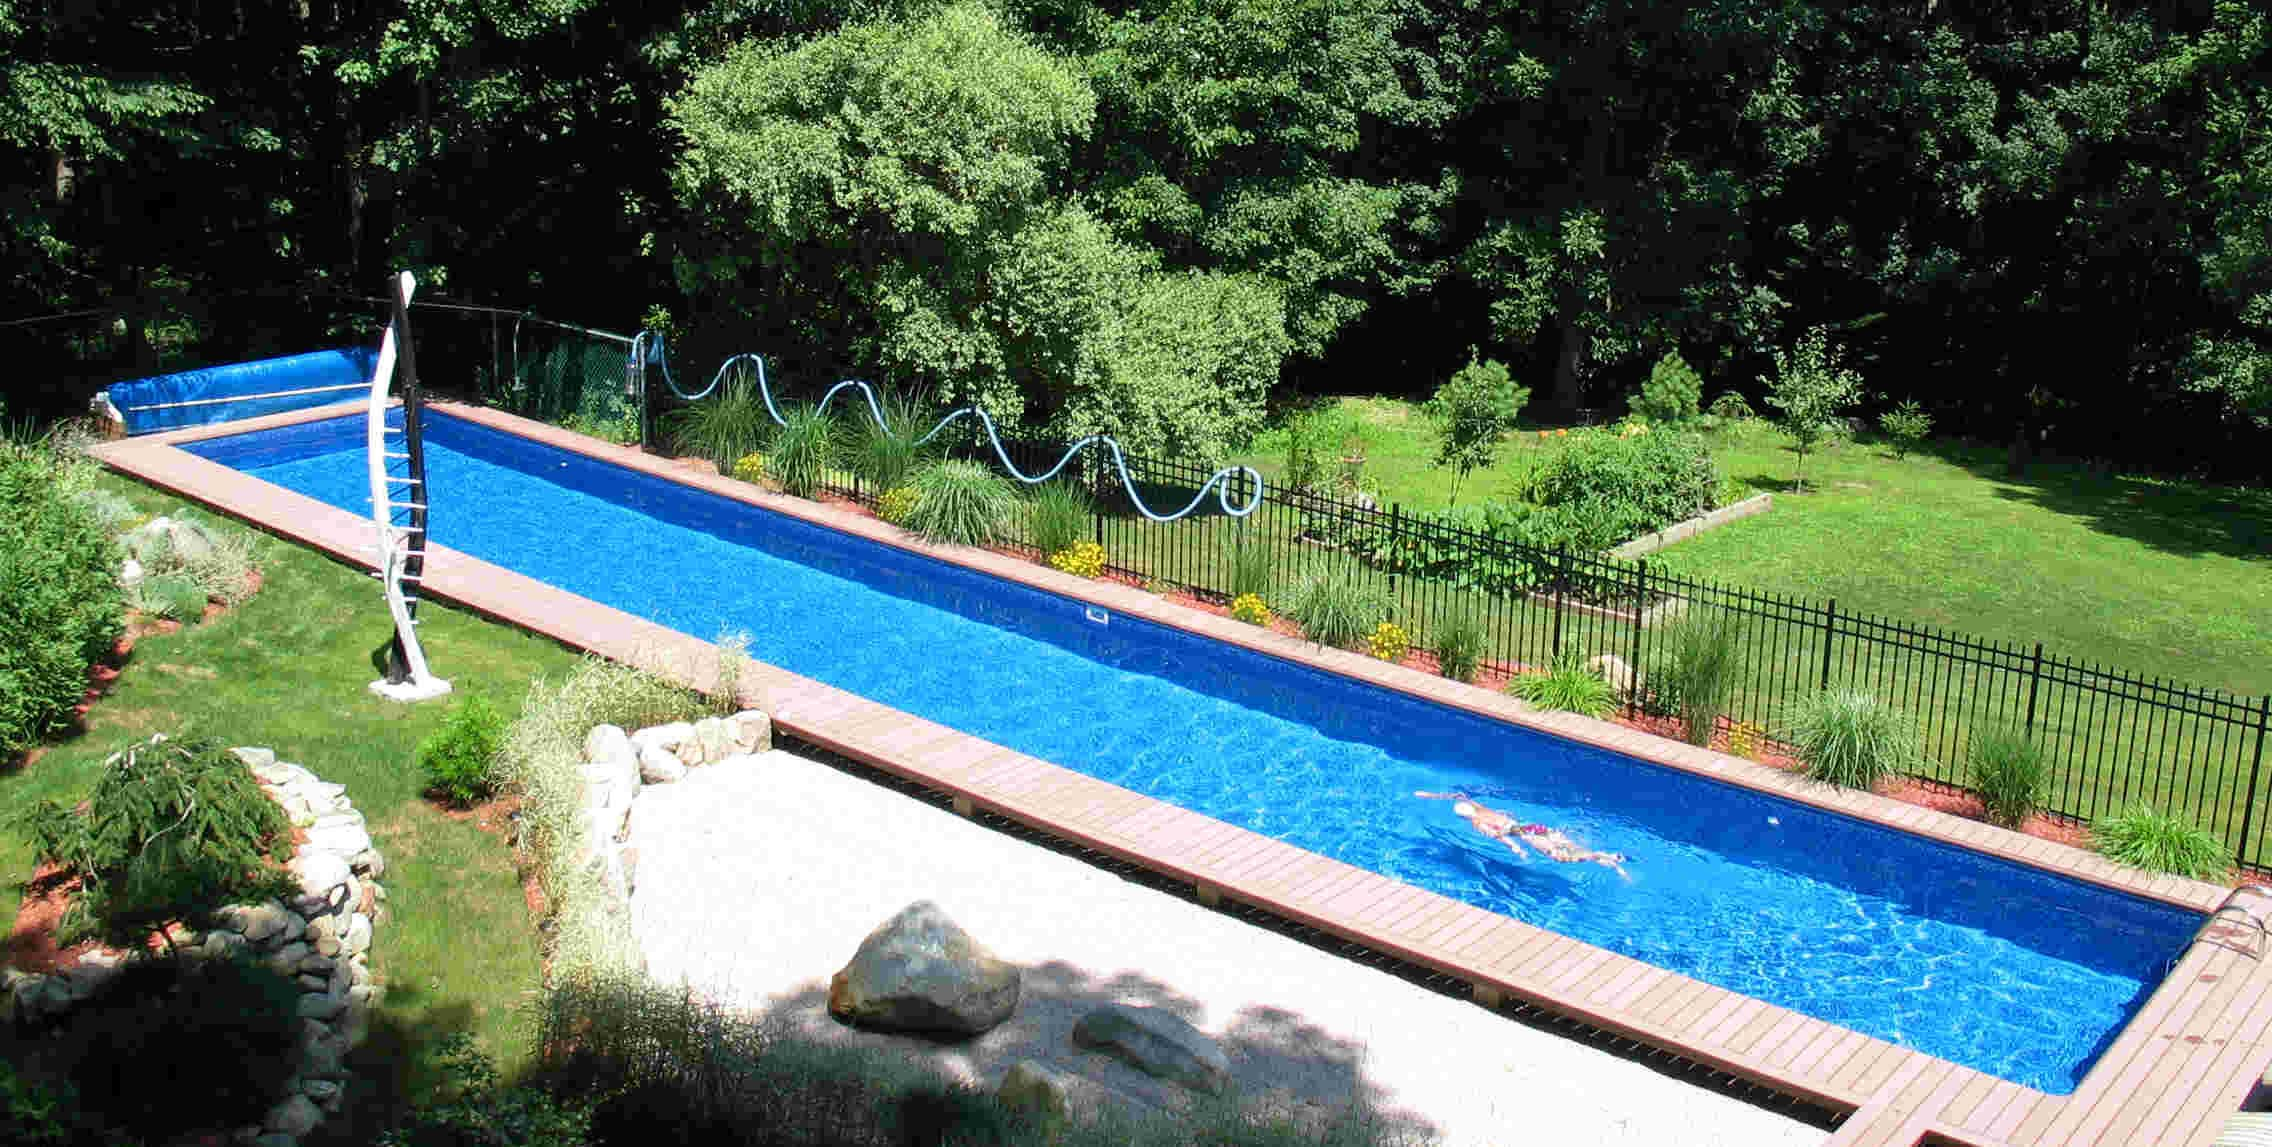 Diy inground swimming pool backyard design ideas Inground swimming pool prices